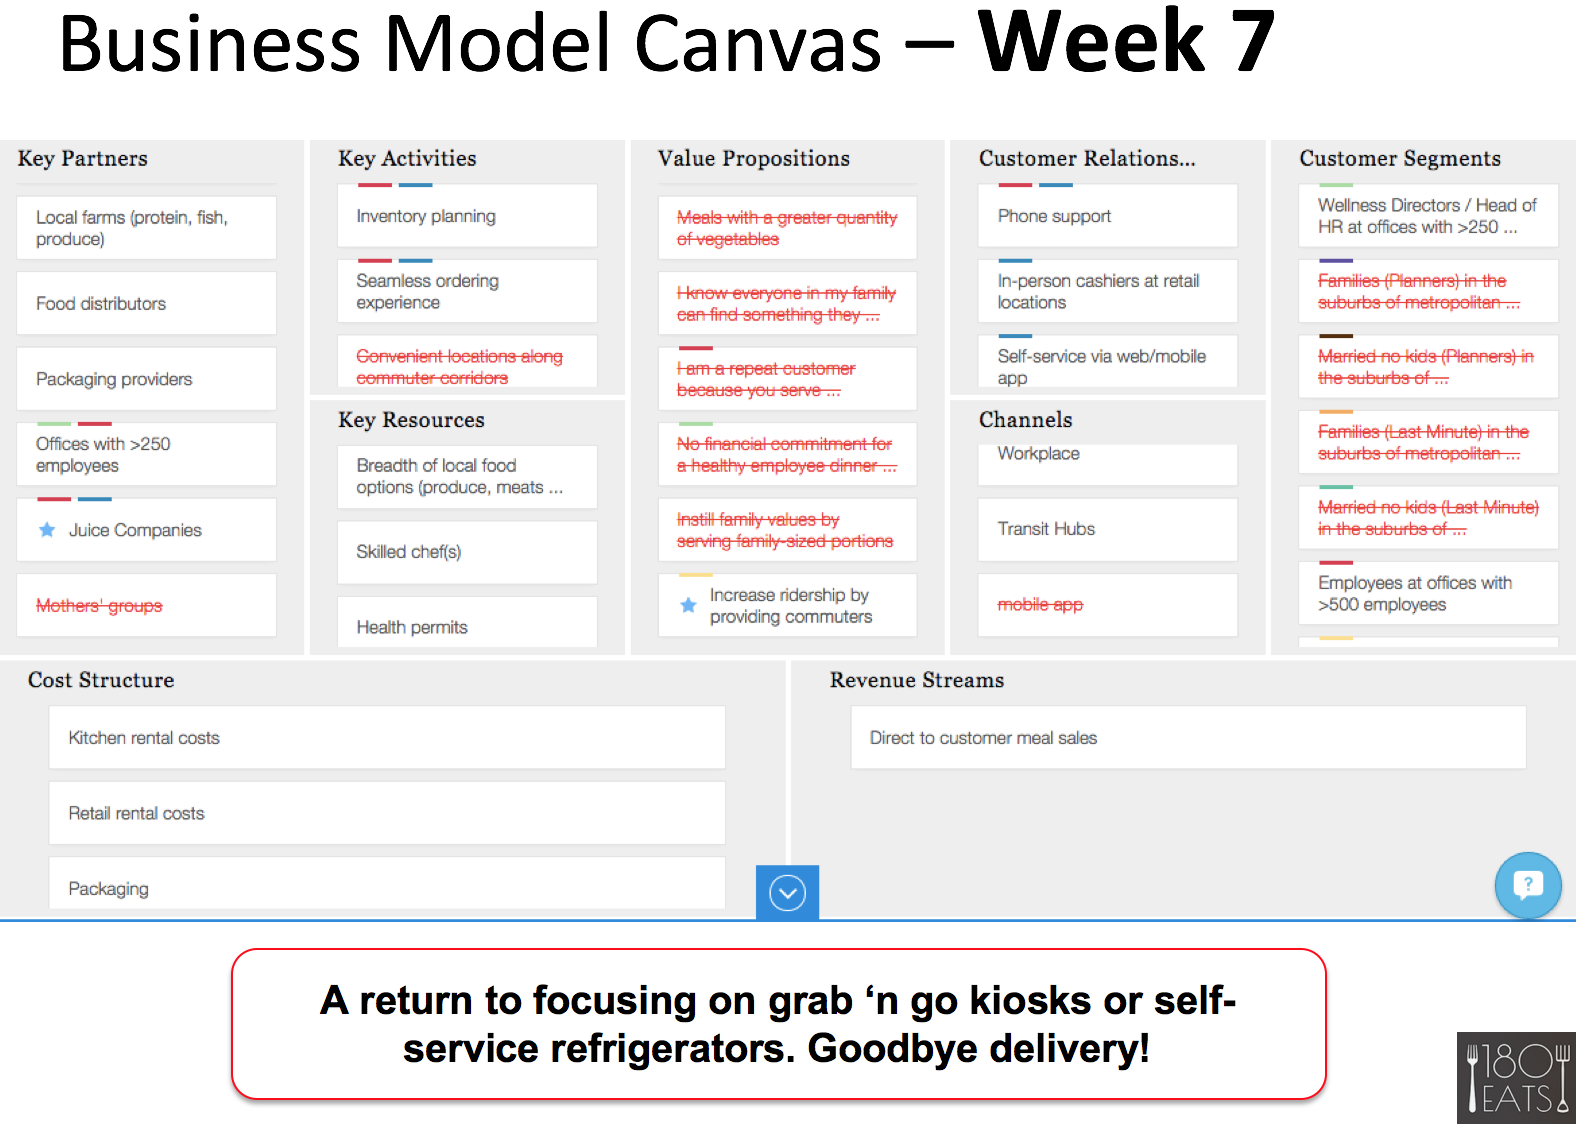 usiness model canvas week 7